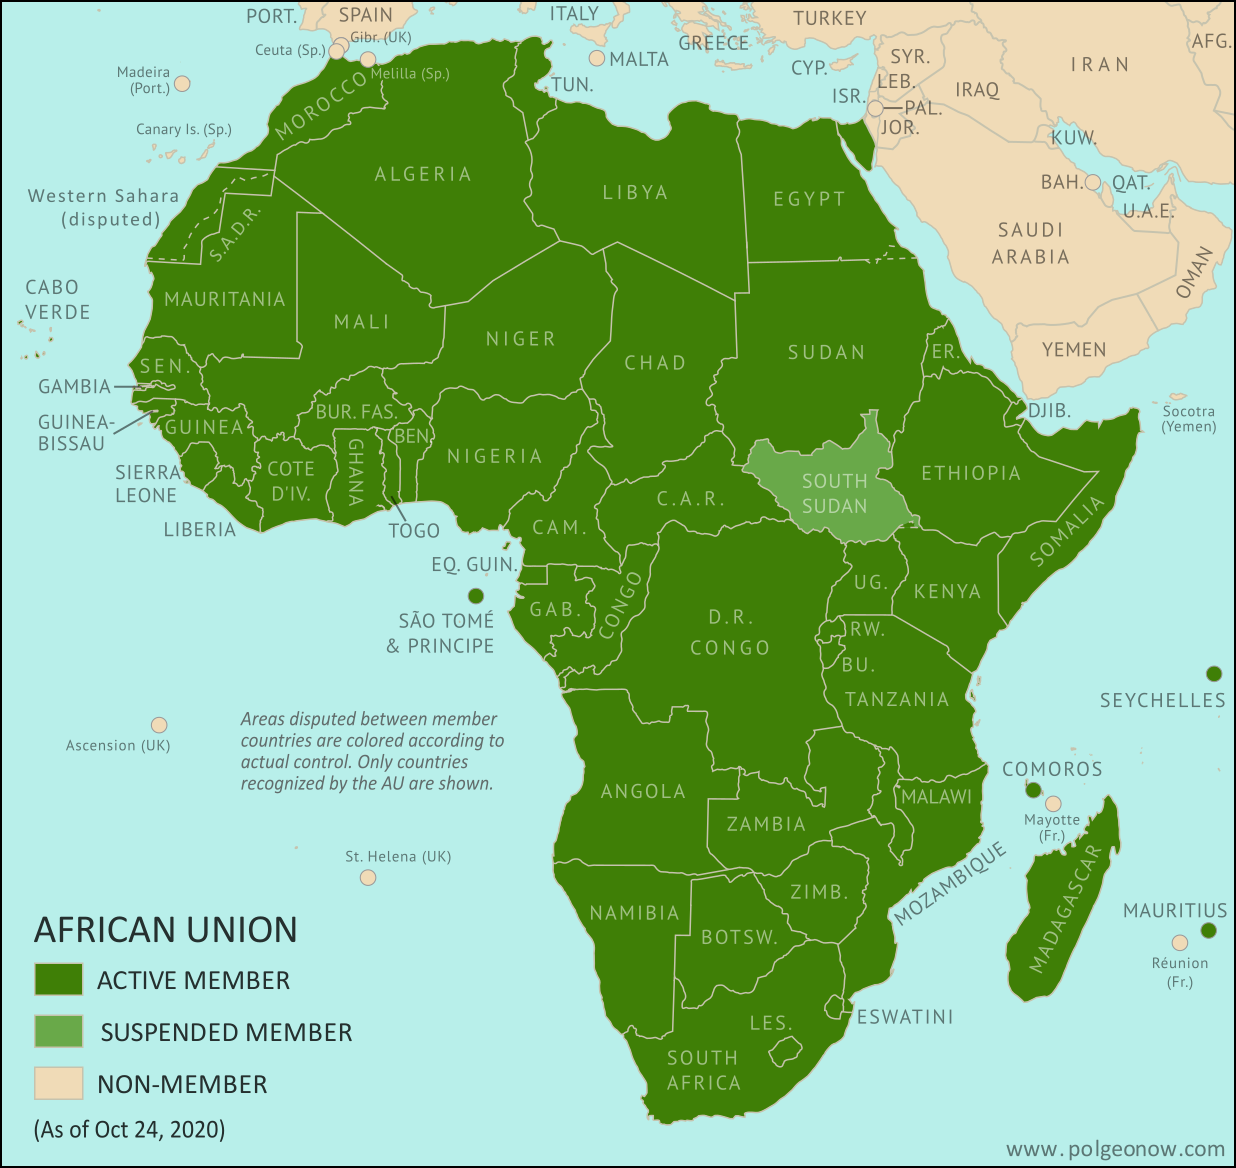 African Union: Map of Africa showing which countries are in the African Union in 2020, including active and suspended member countries and non-member territories. Updated for the October 2020 reinstatement of Mali (colorblind accessible).